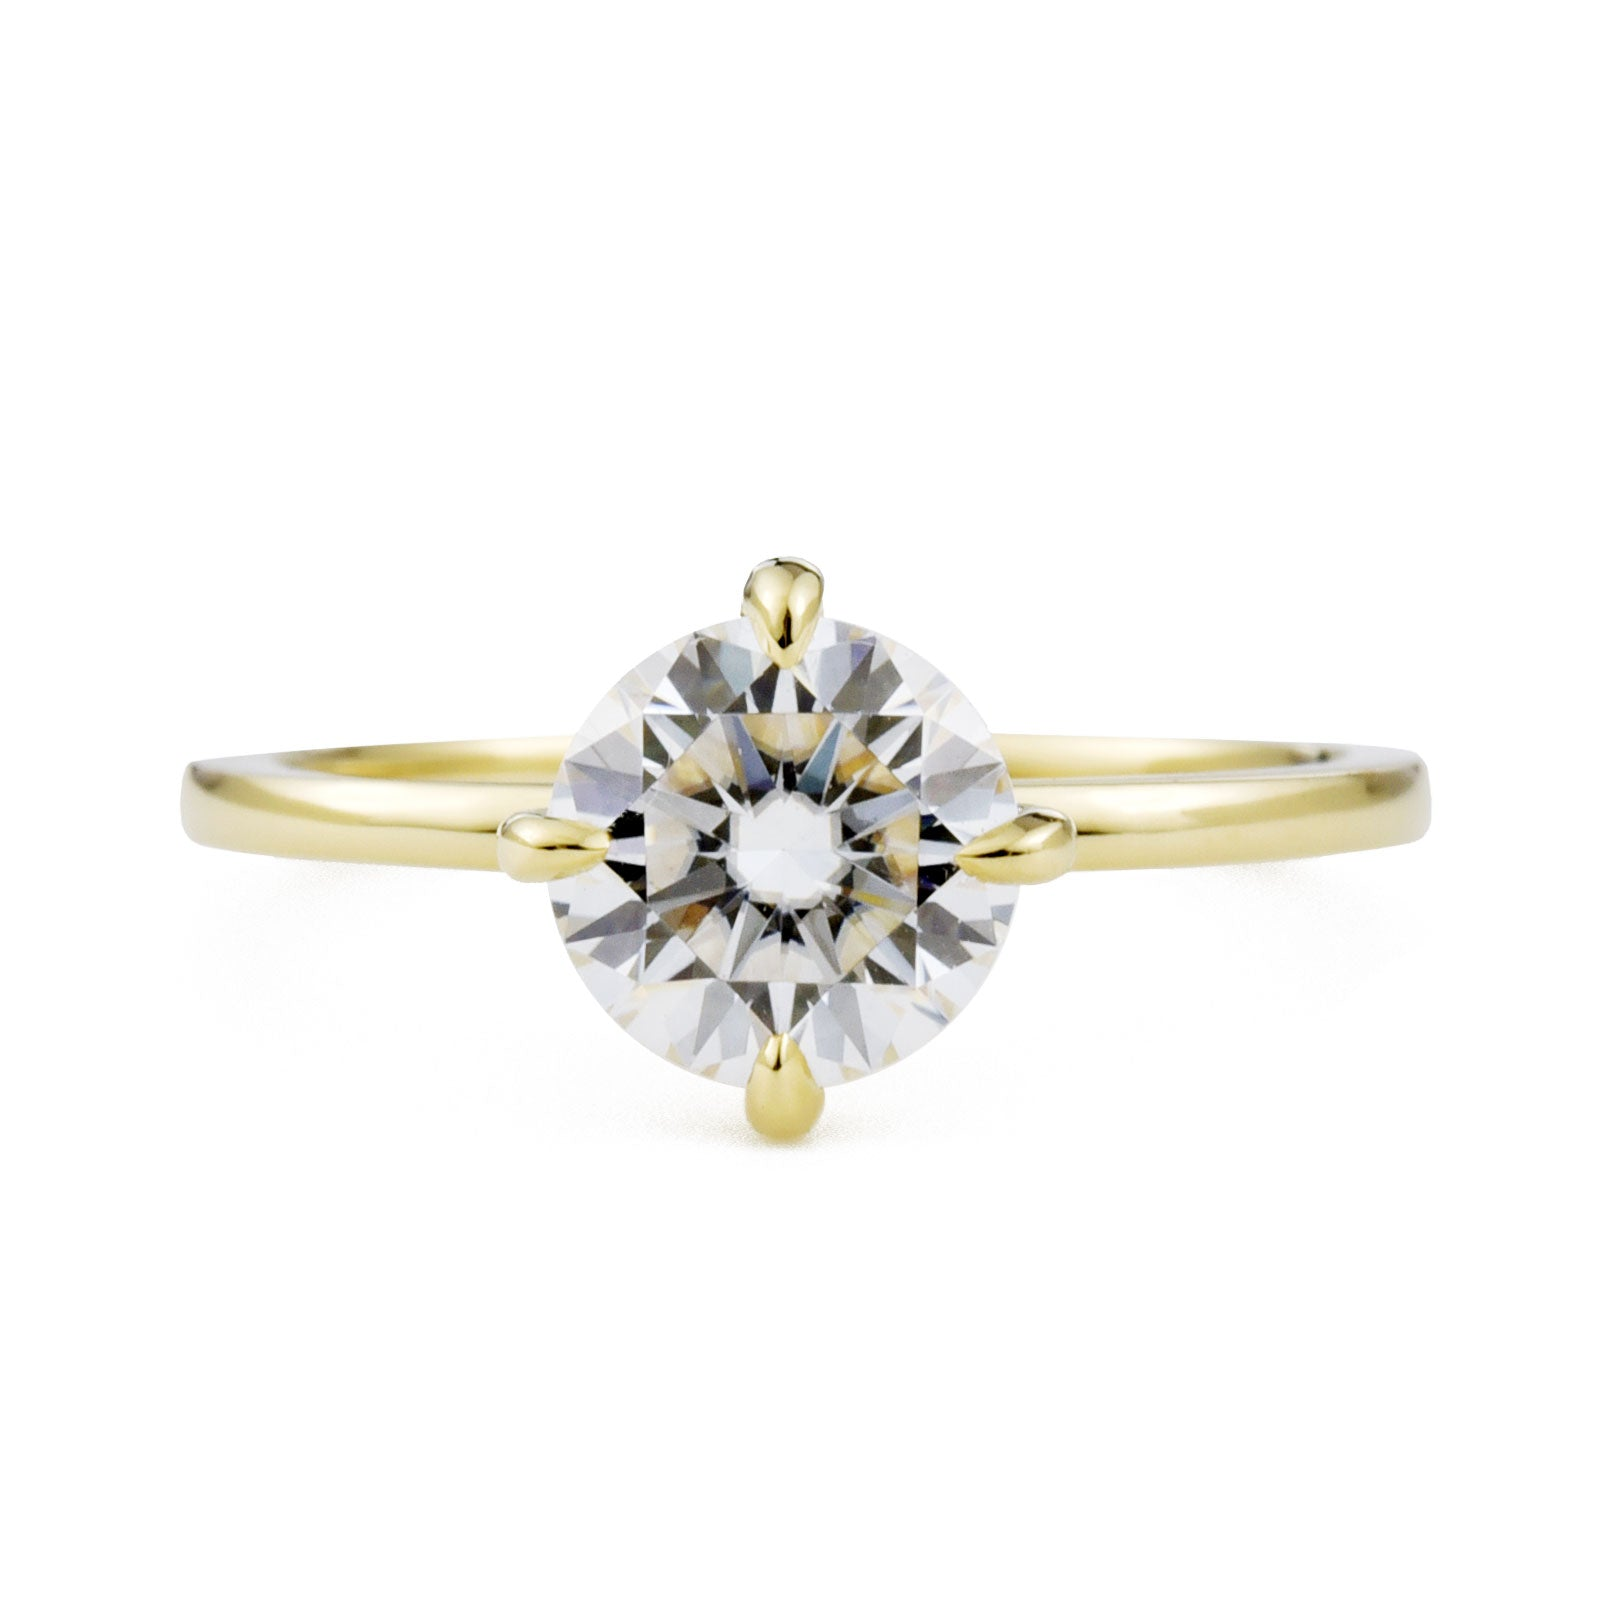 Vera Round Moissanite Solitaire Engagement Ring